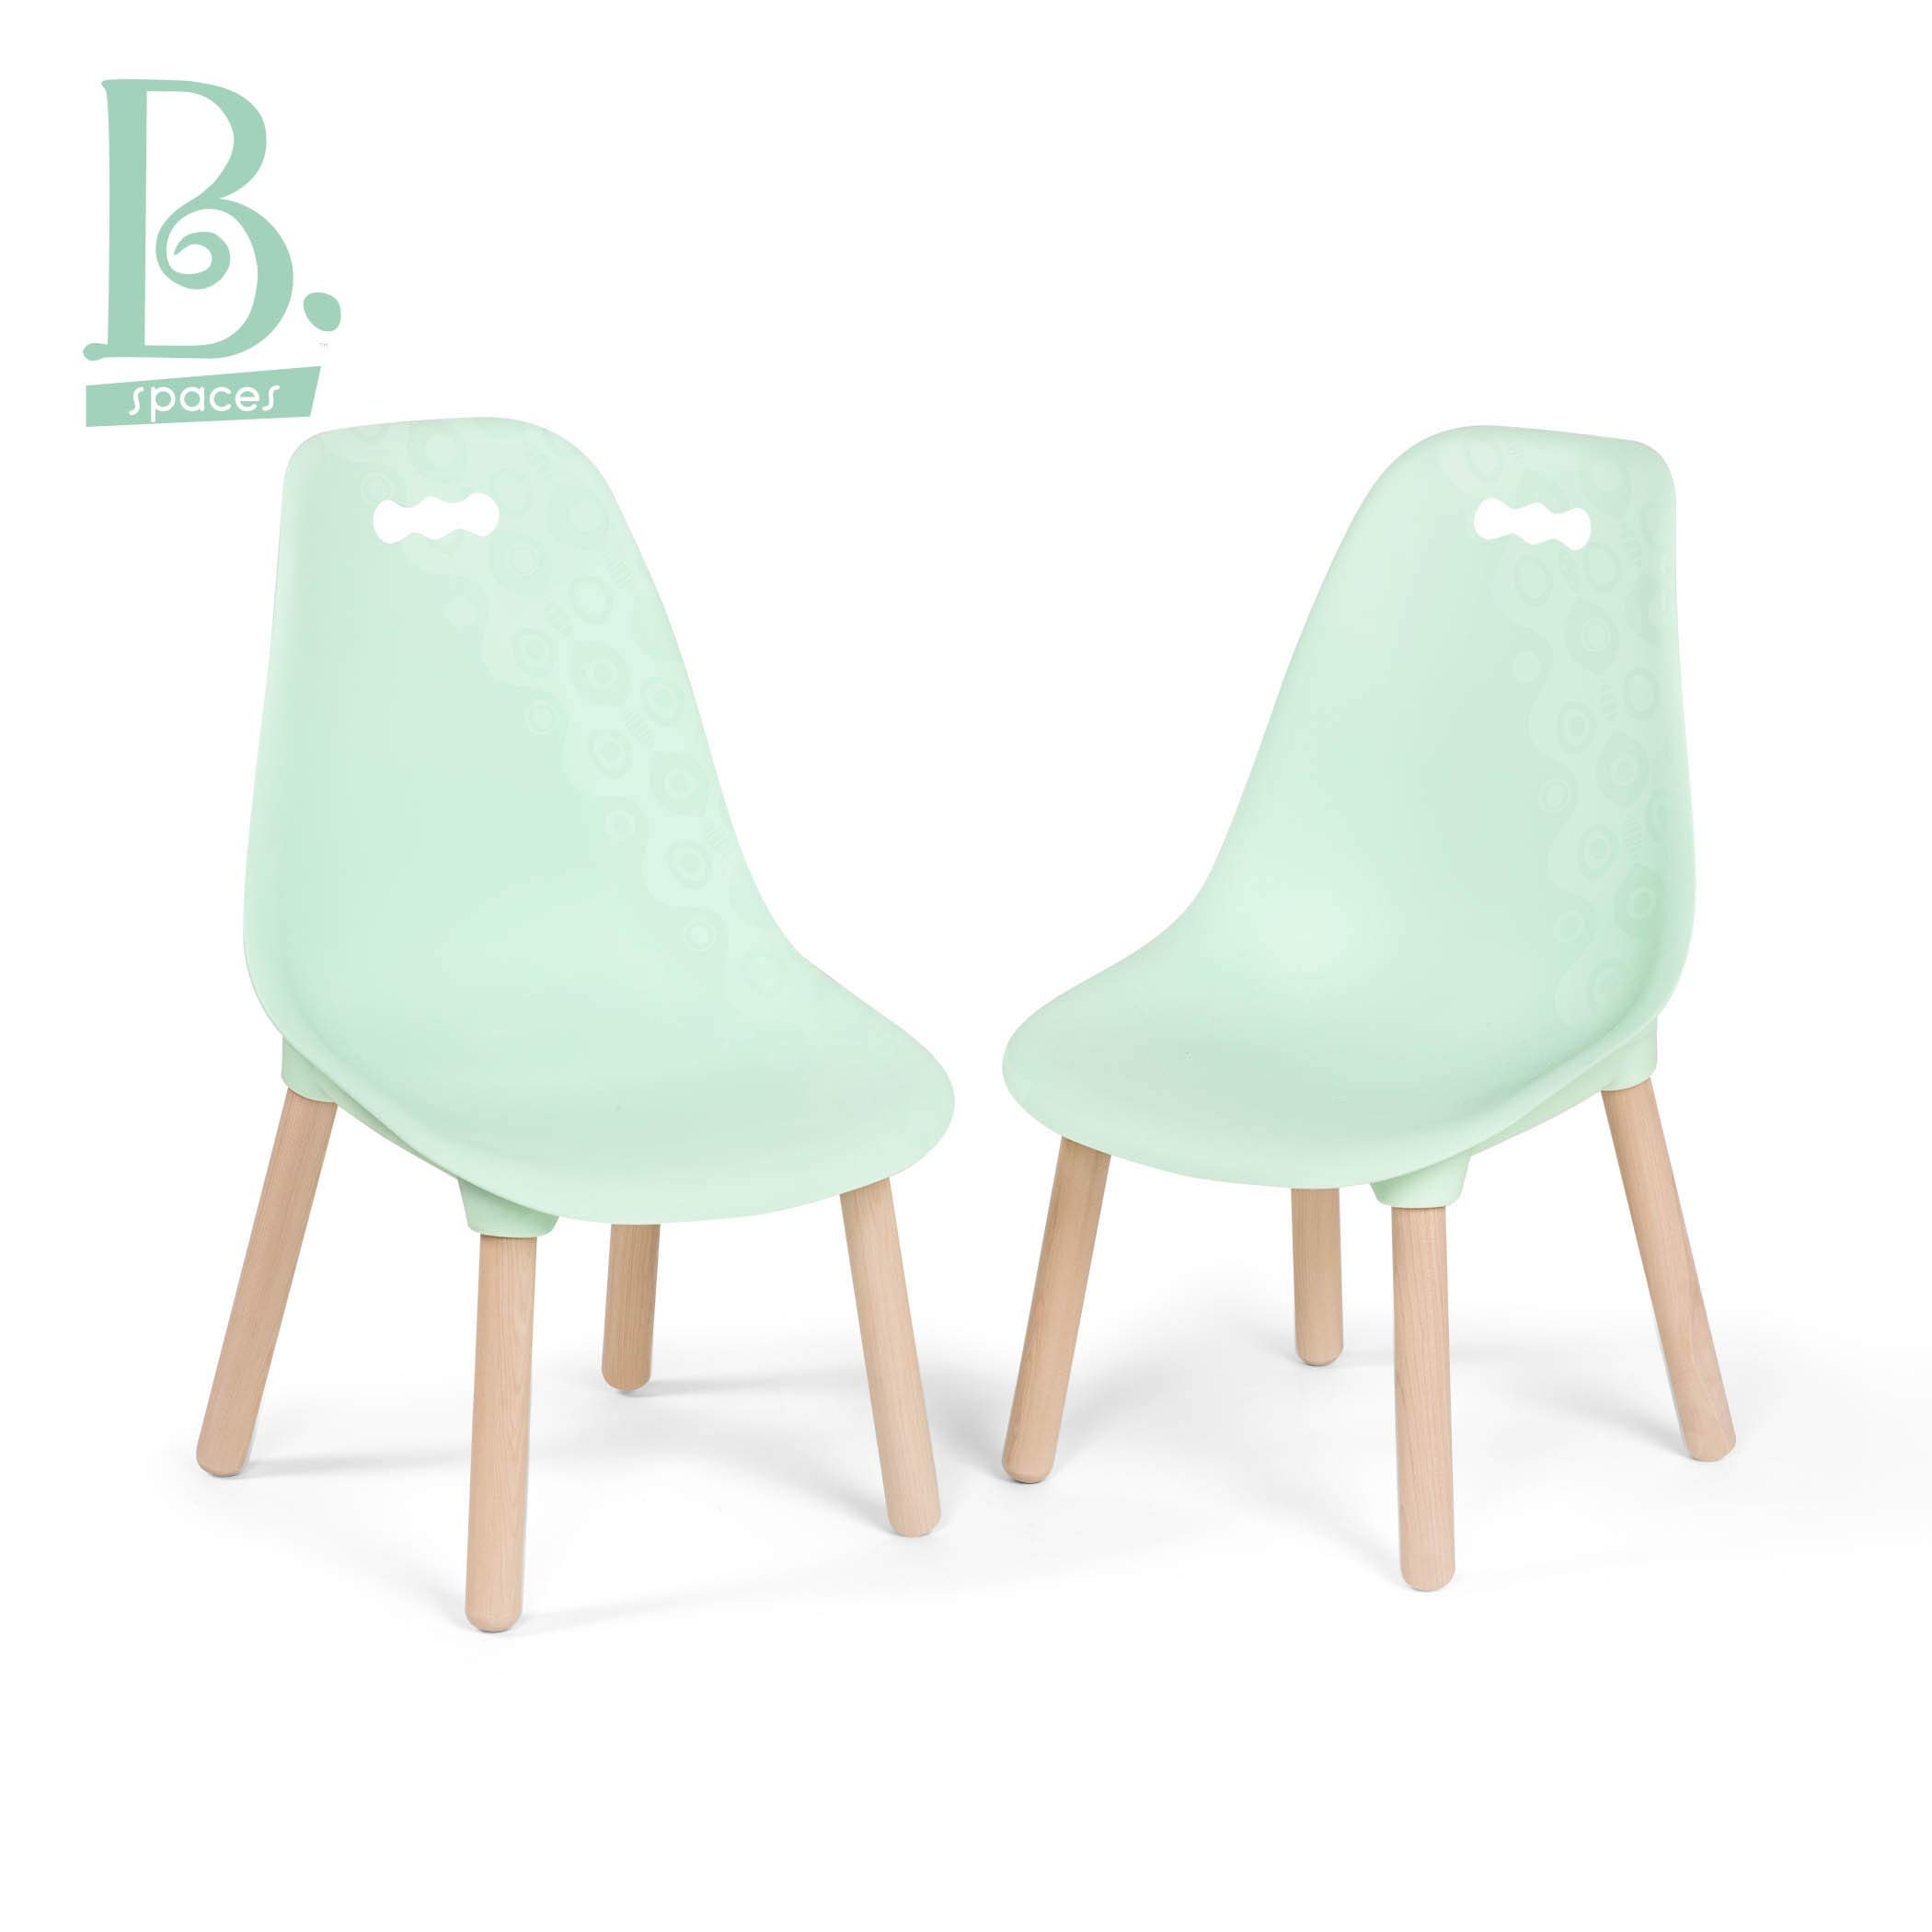 B. spaces by Battat - Kid-Century Modern: Trendy Toddler Chair Set of Two Kids Chairs - Kids Furniture Set for Toddlers and Kids - Mint by B. spaces by Battat